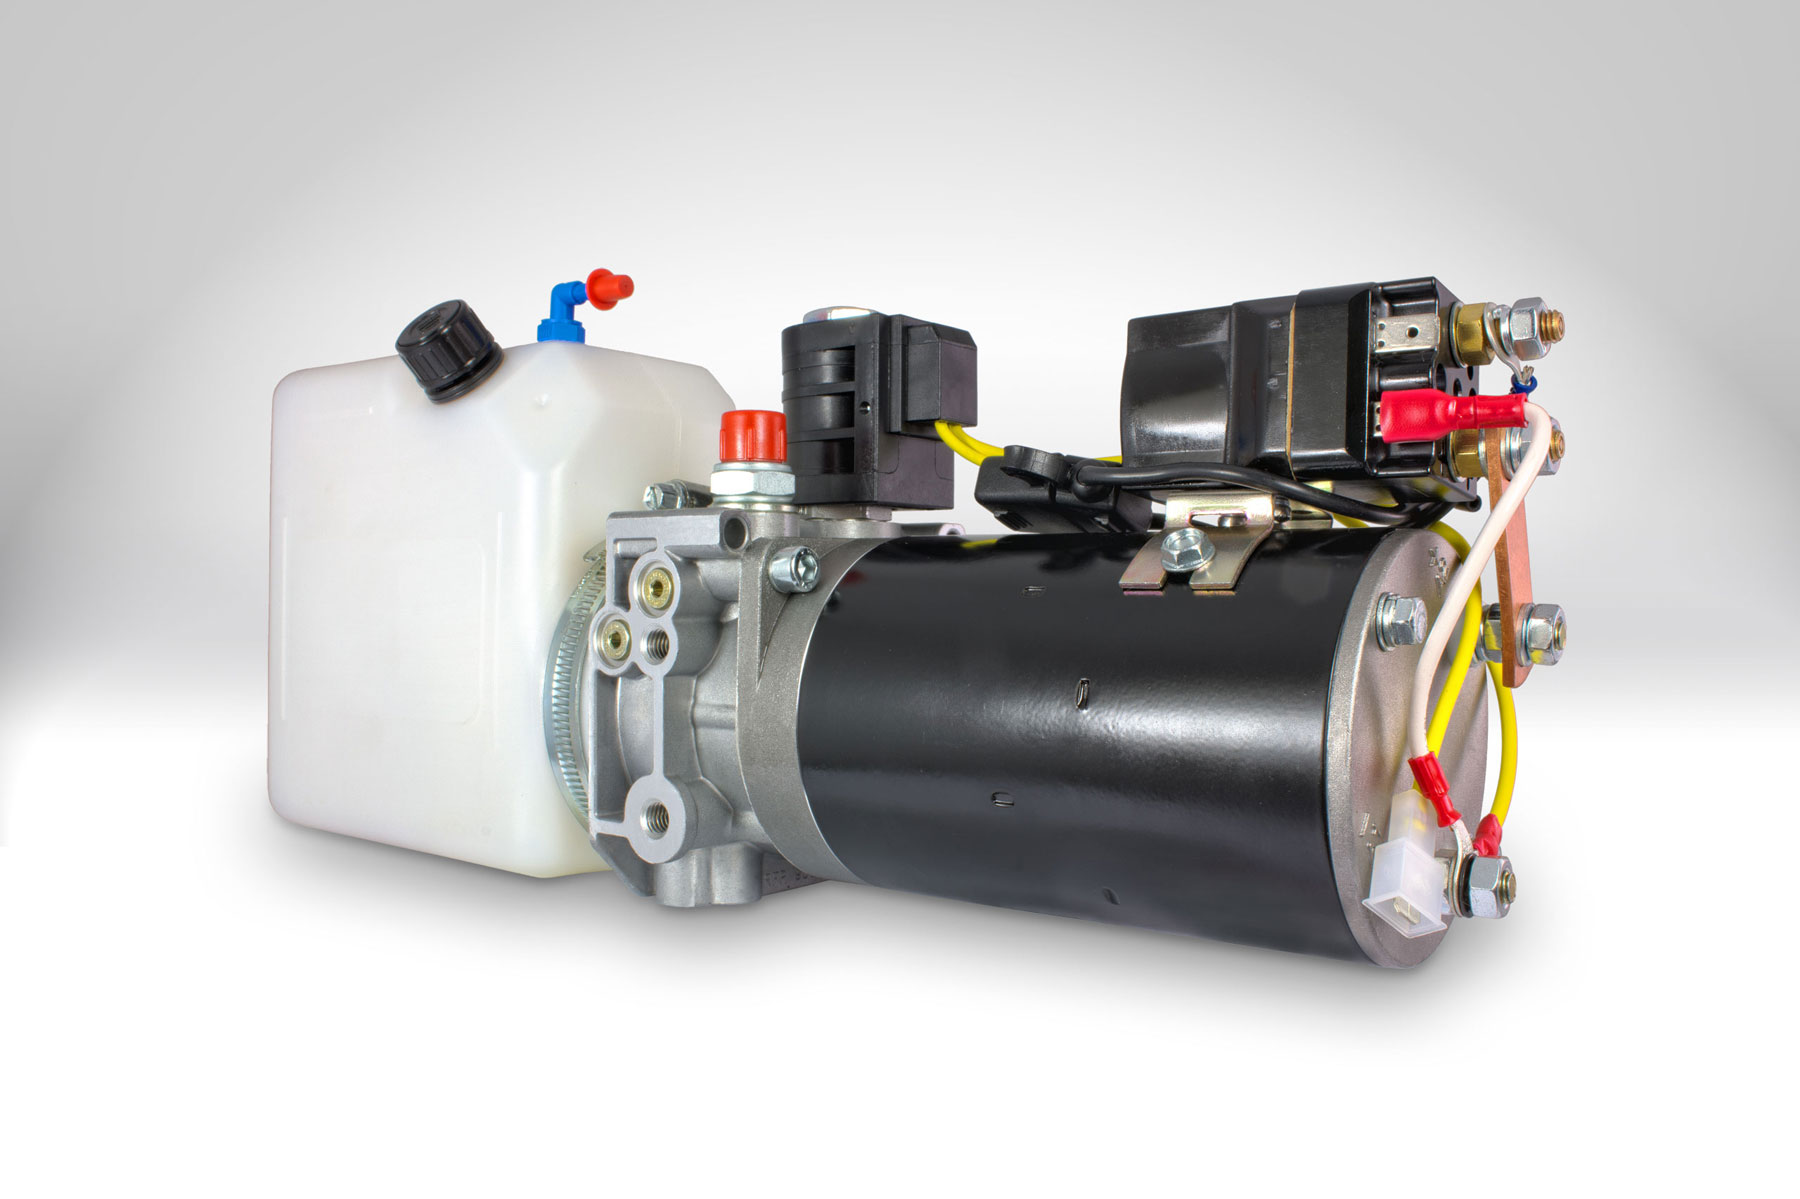 hight resolution of hydraulic power pack micro90 gallery hydraulic power pack micro90 gallery